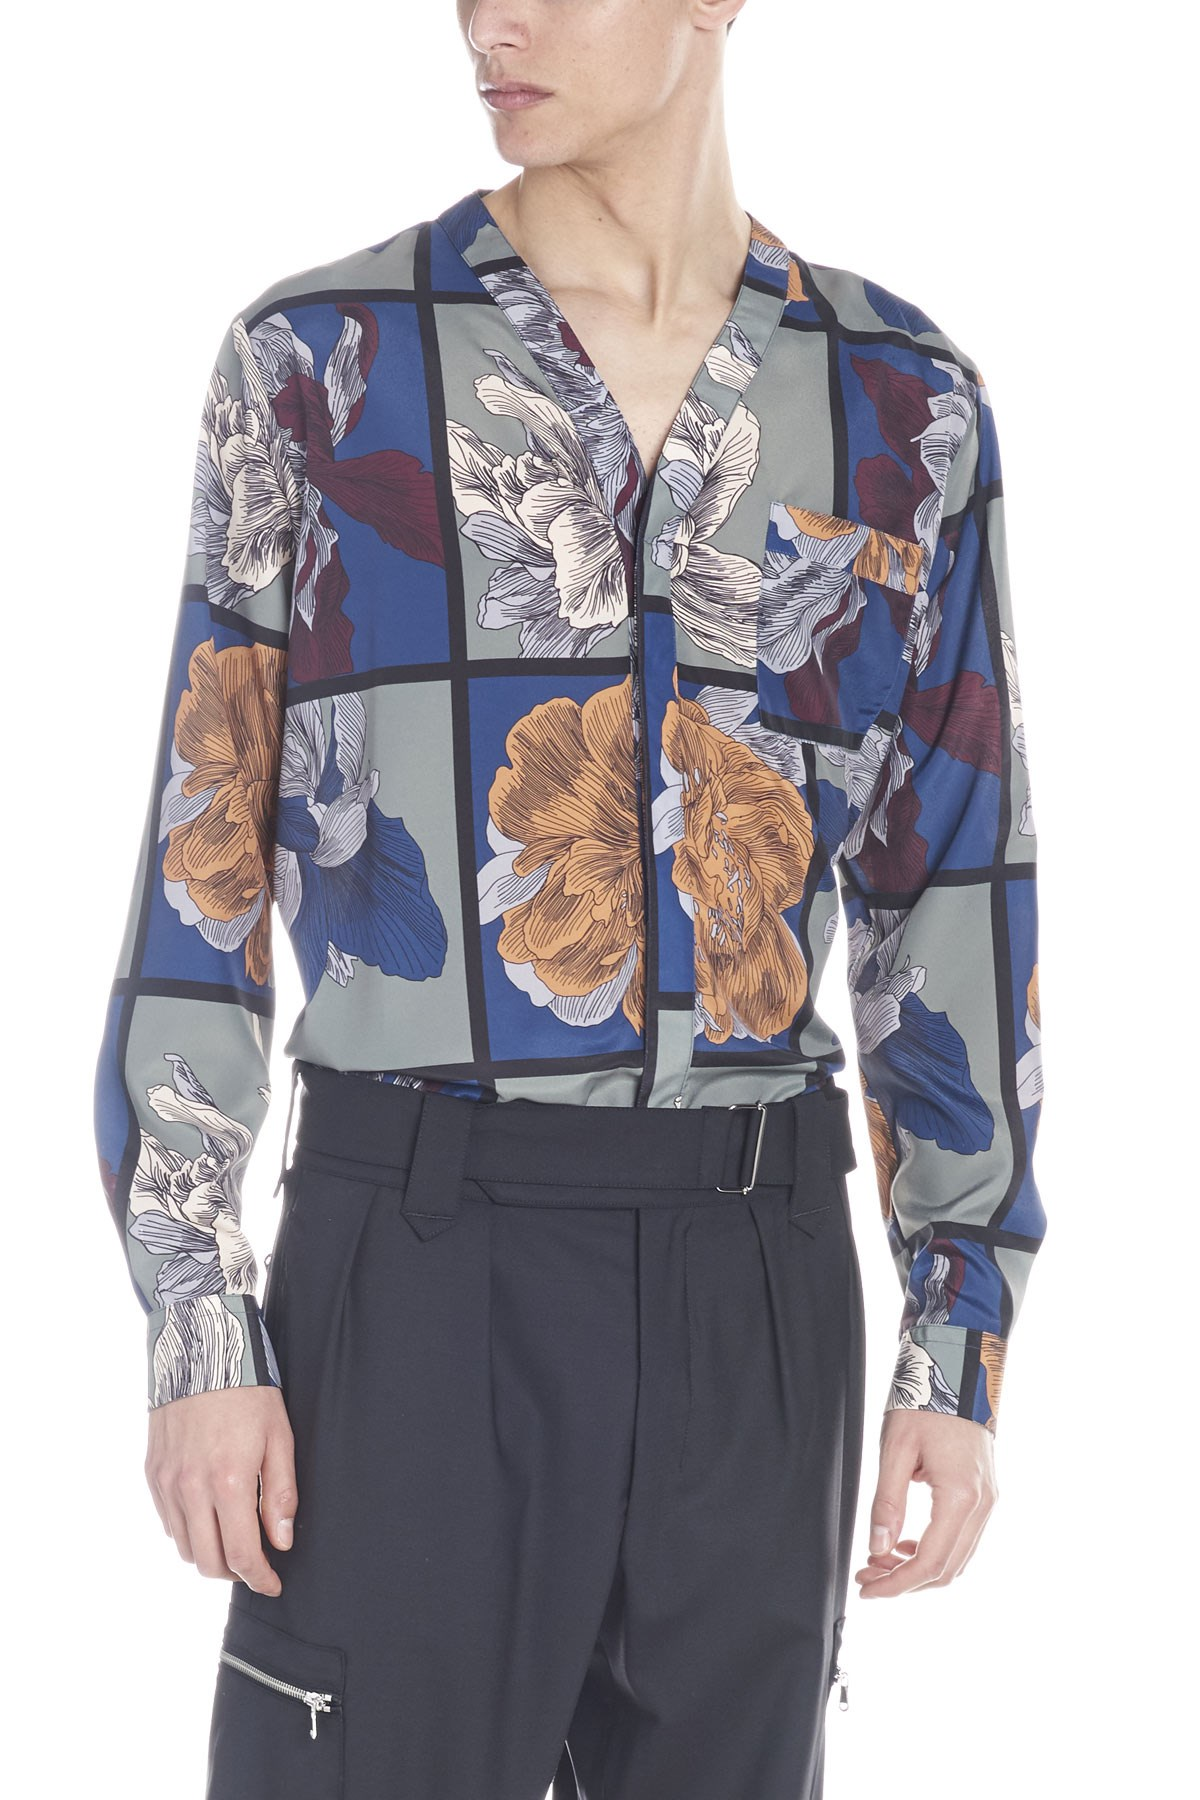 5d9056838 christian pellizzari floral printed shirt available on julian ...